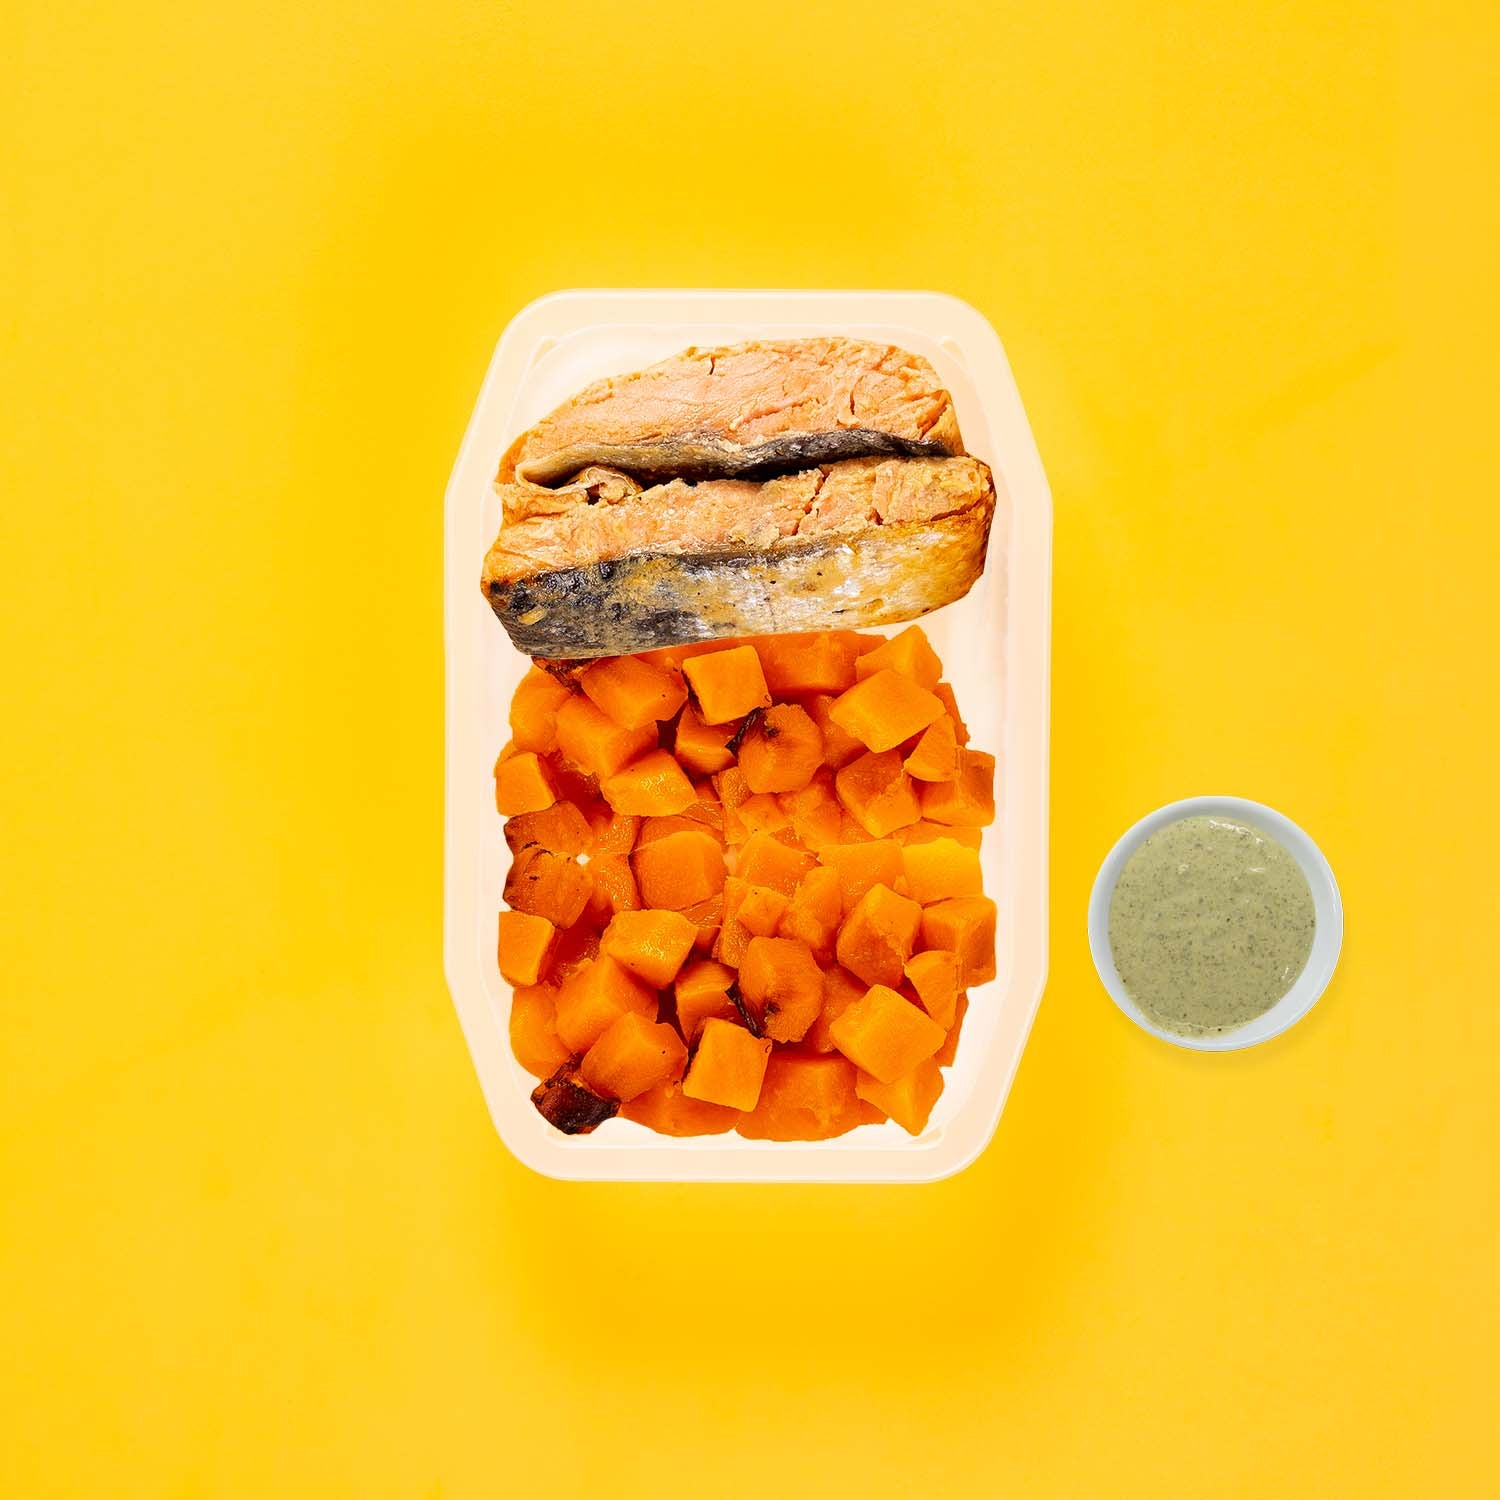 50g Miso Salmon 150g Coconut Pumpkin 100g Coconut Pumpkin Pesto Cream